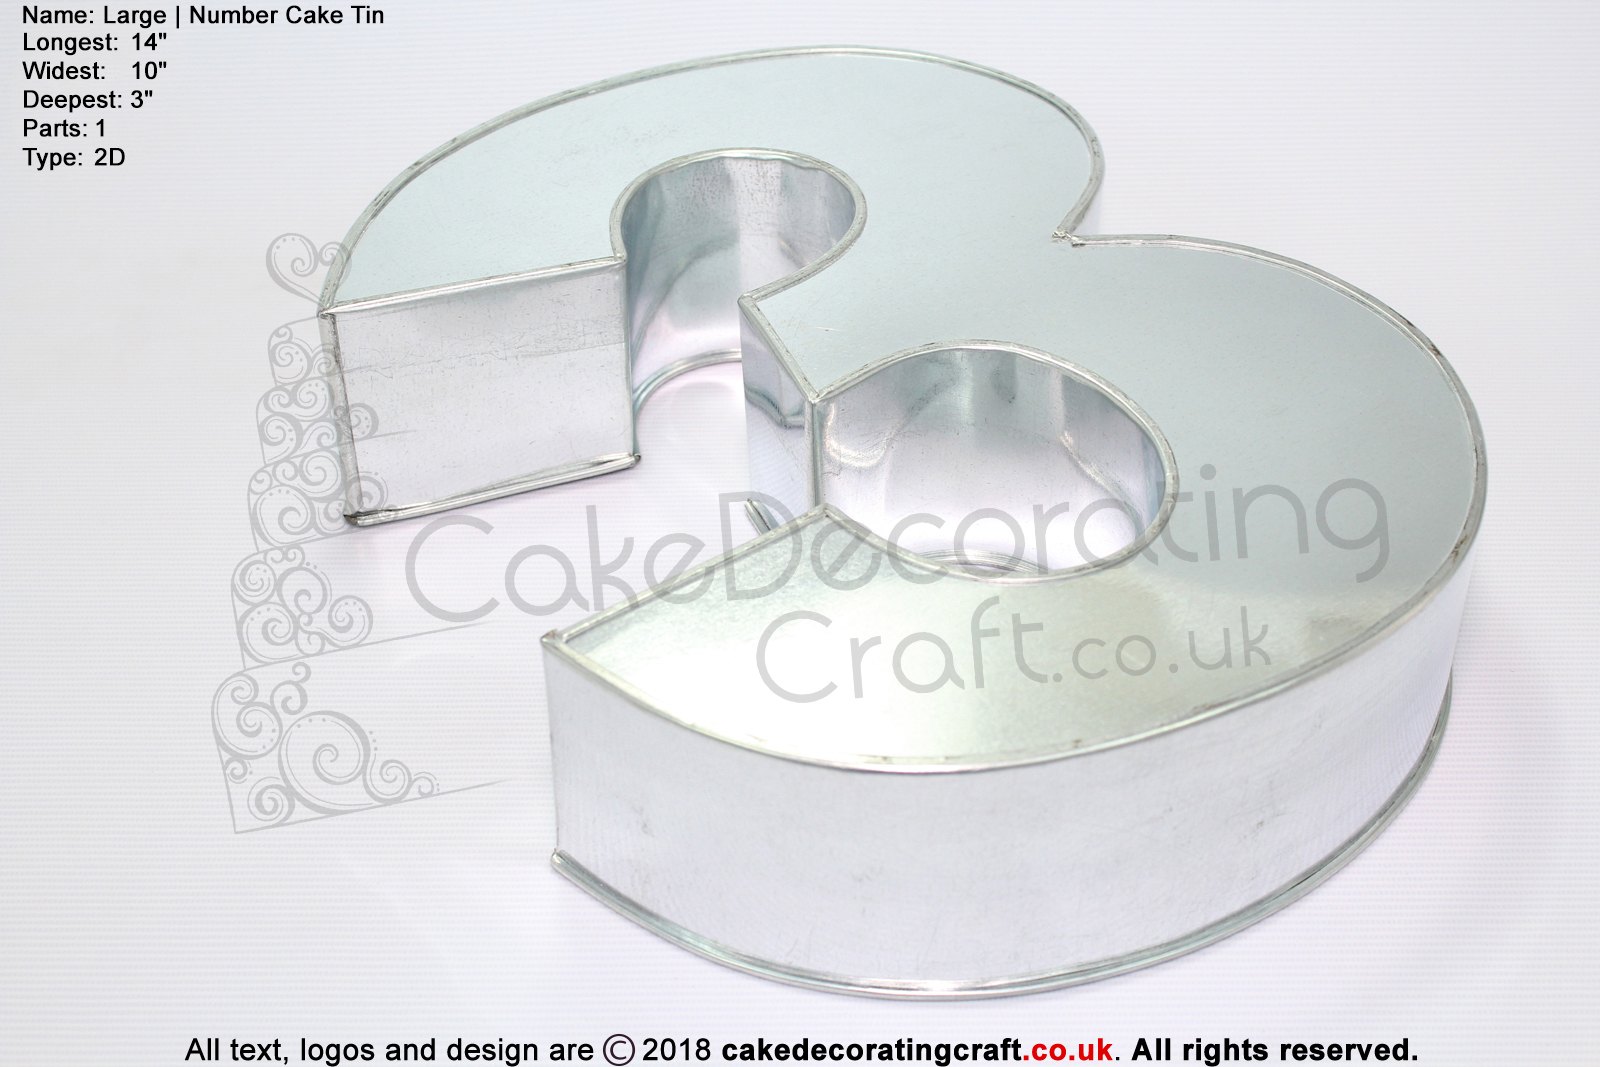 Large Number 3 Novelty Shape Cake Baking Tins And Pans